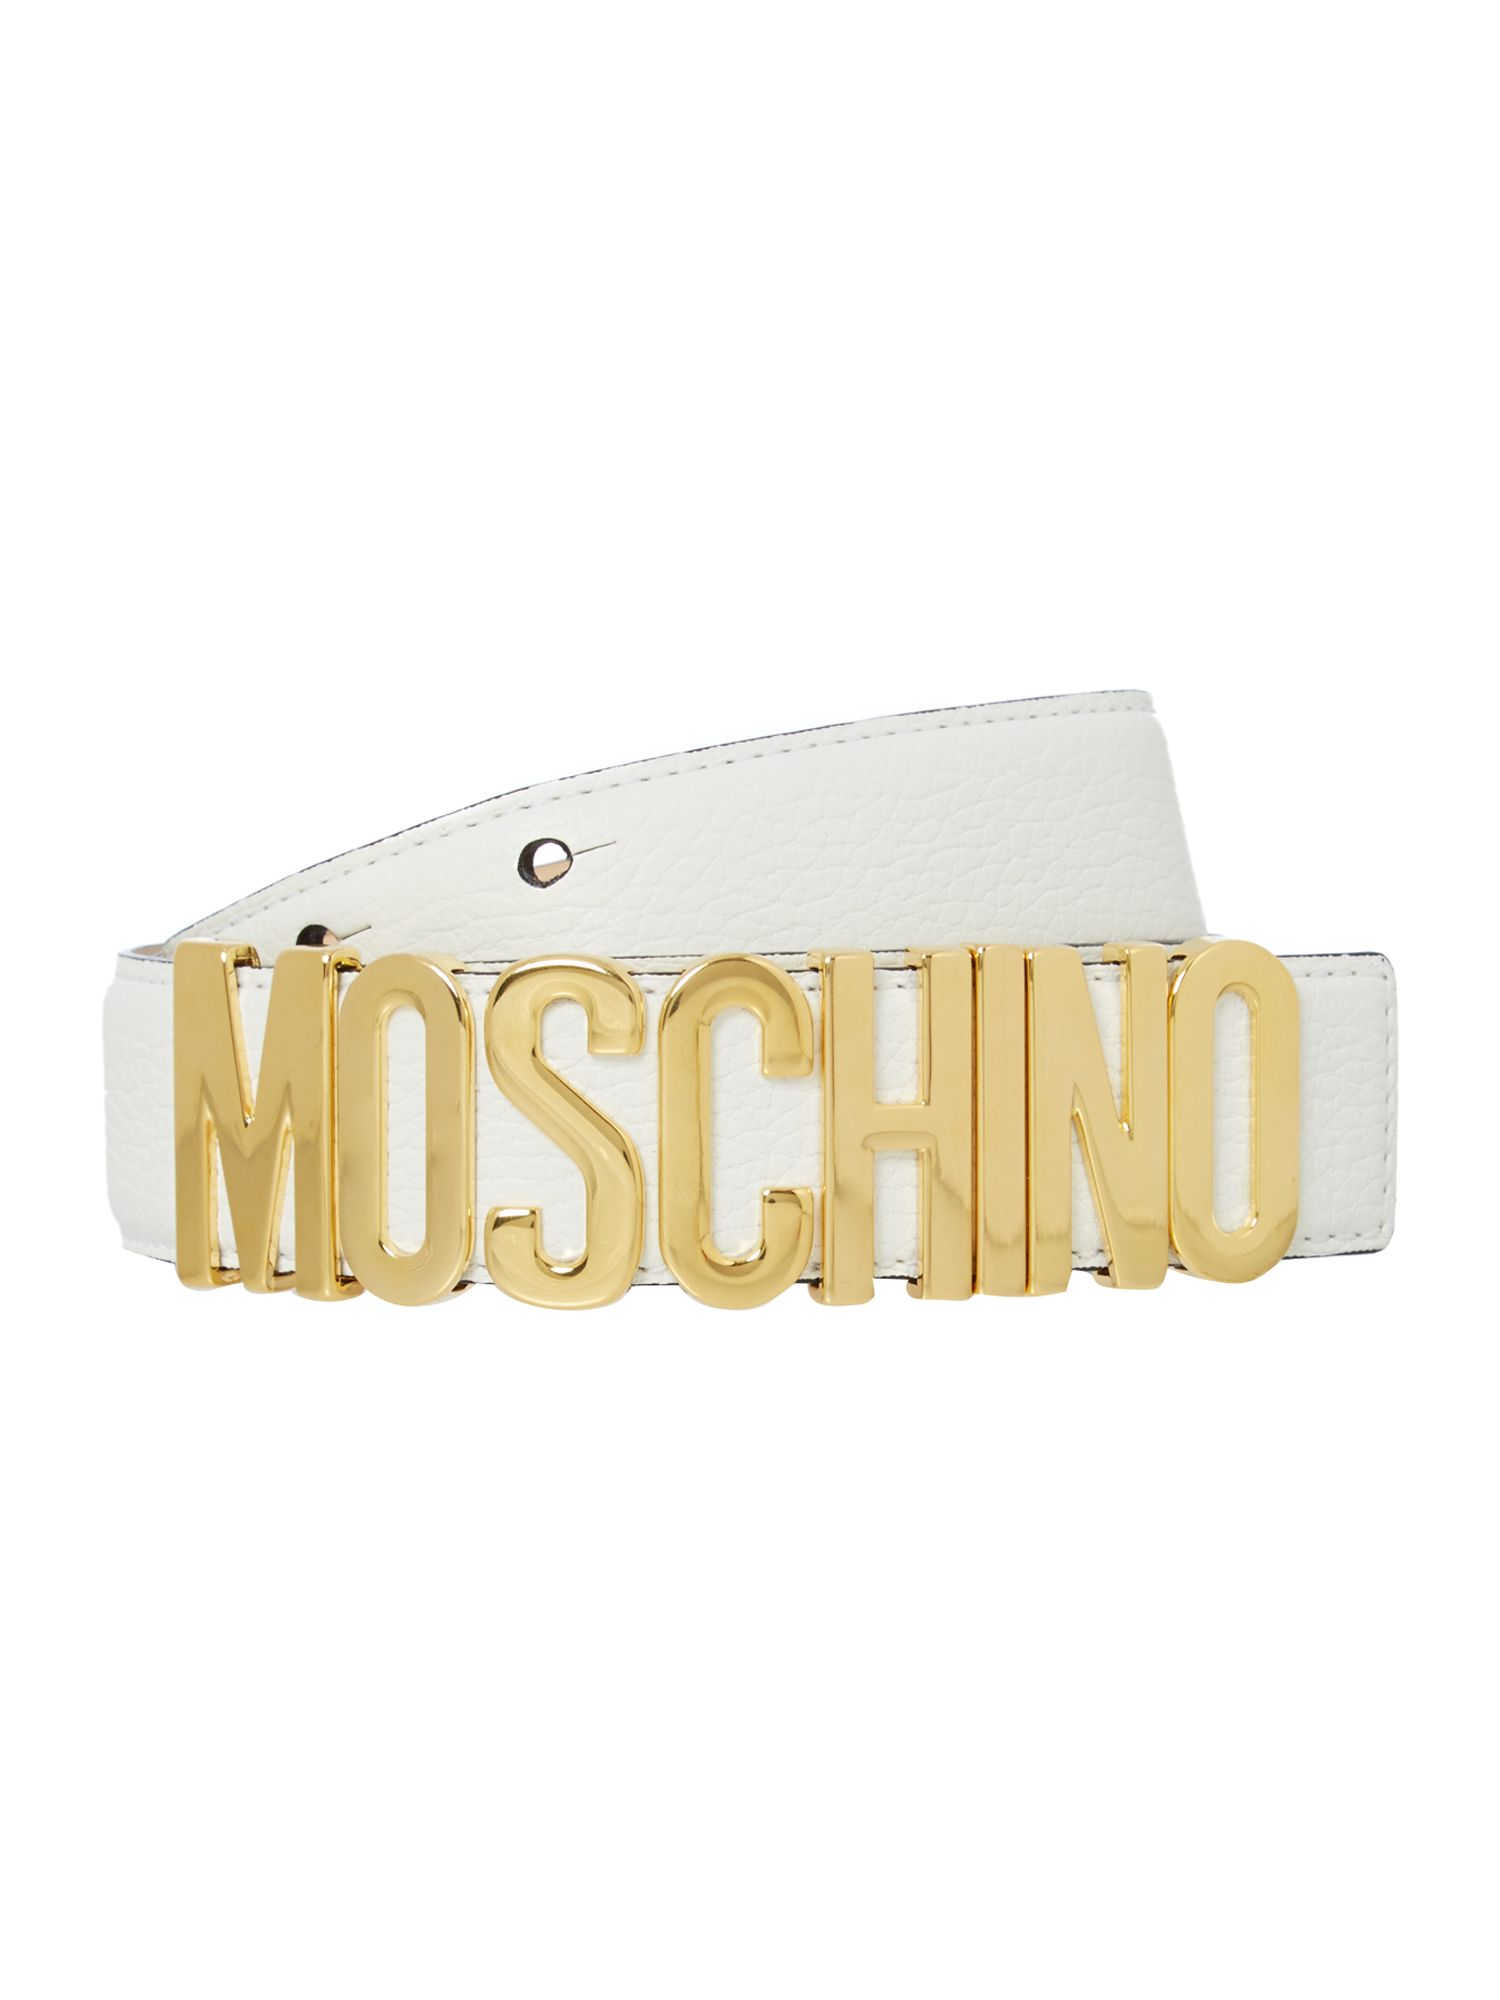 Moschino white logo belt